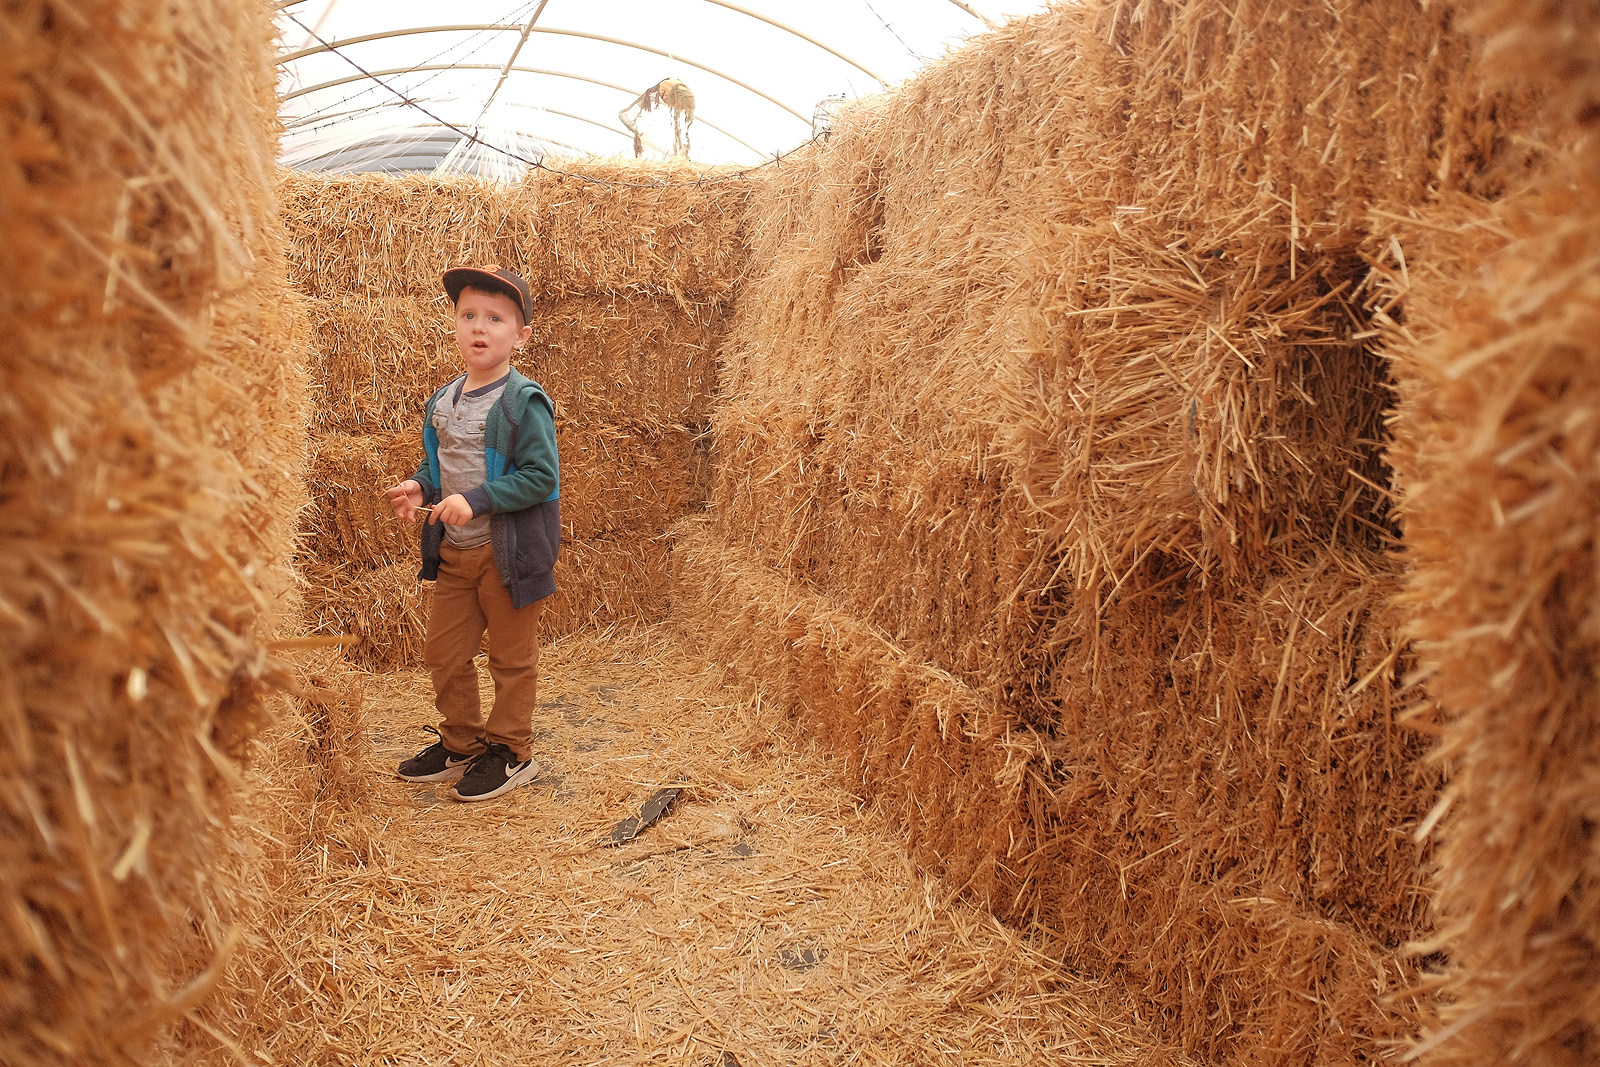 boy-standing-in-hay-maze-rule-of-thirds